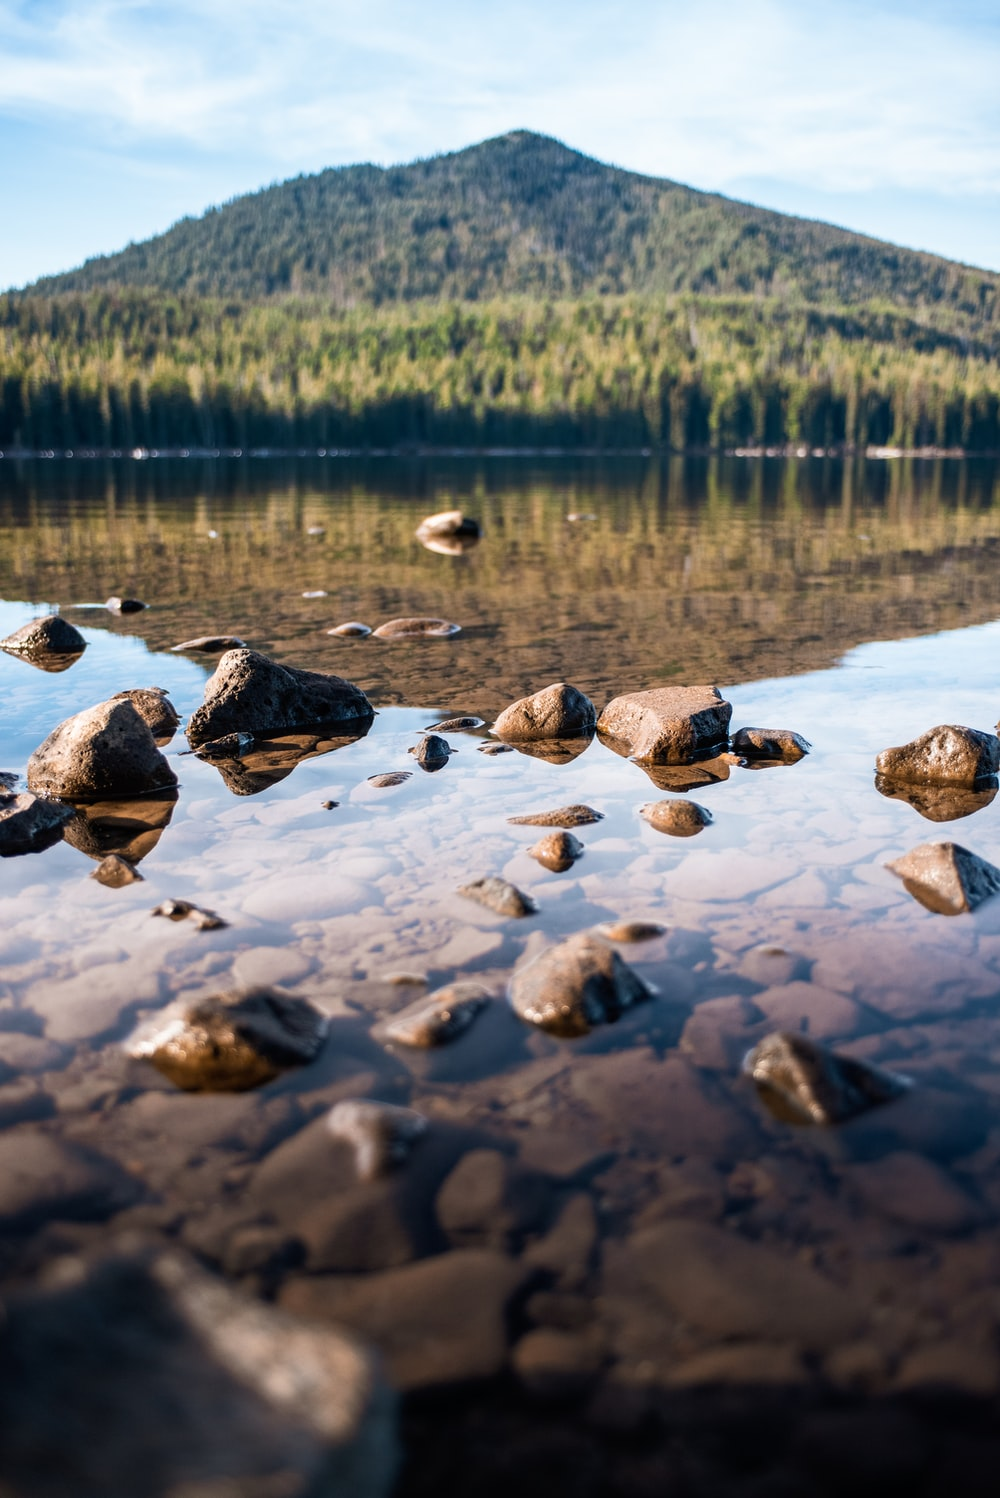 brown rocks on body of water viewing mountain under white and blue sky during daytime